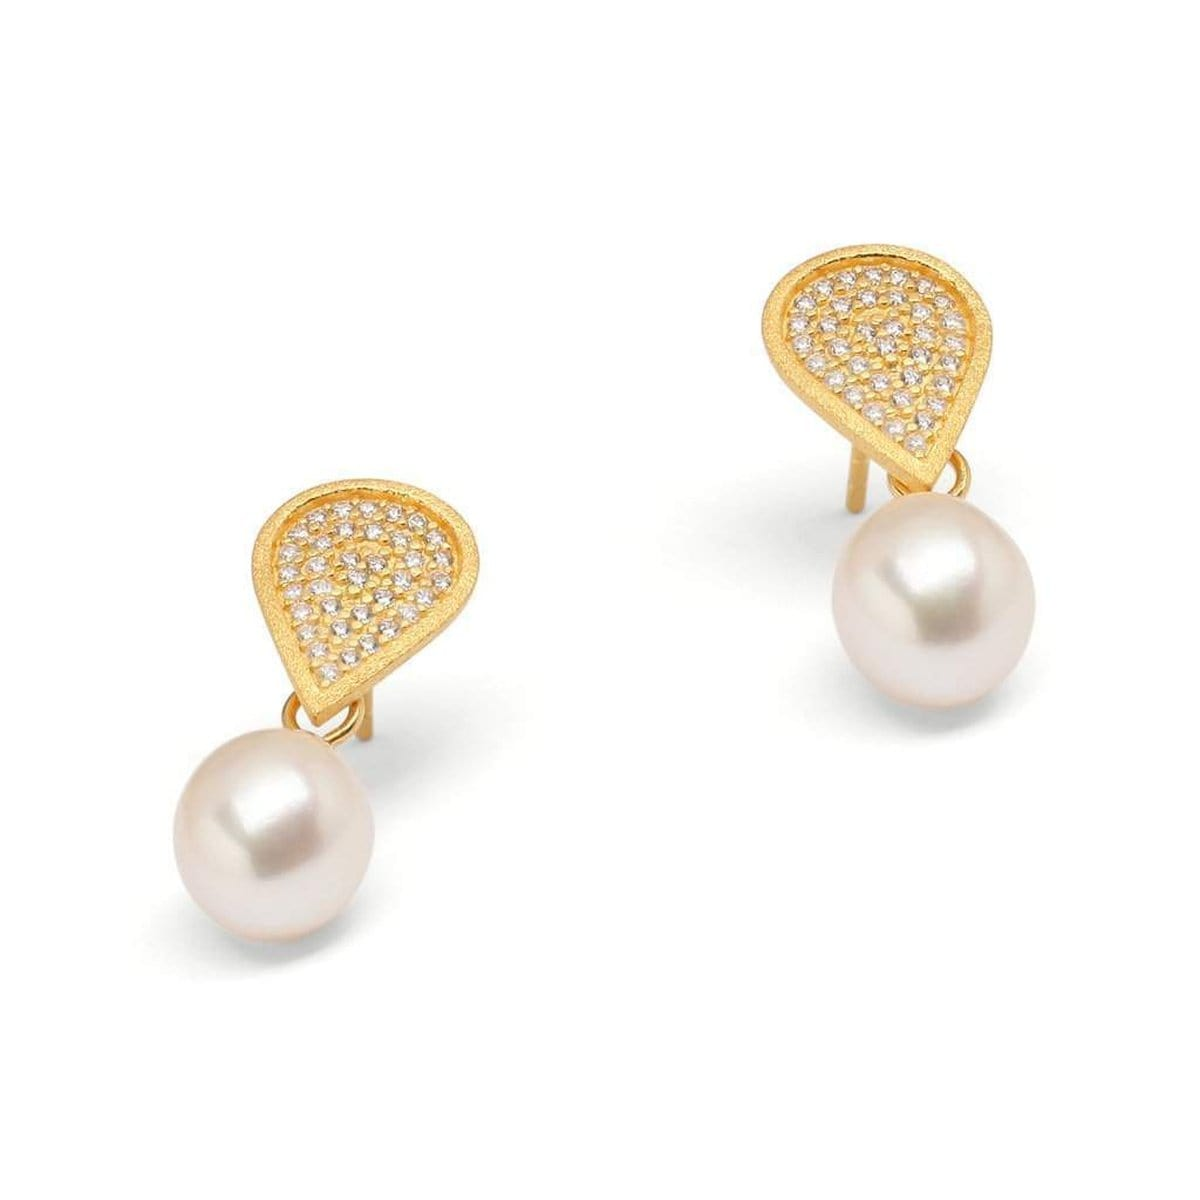 Dania Freshwater Pearl Earrings - 15518656-Bernd Wolf-Renee Taylor Gallery